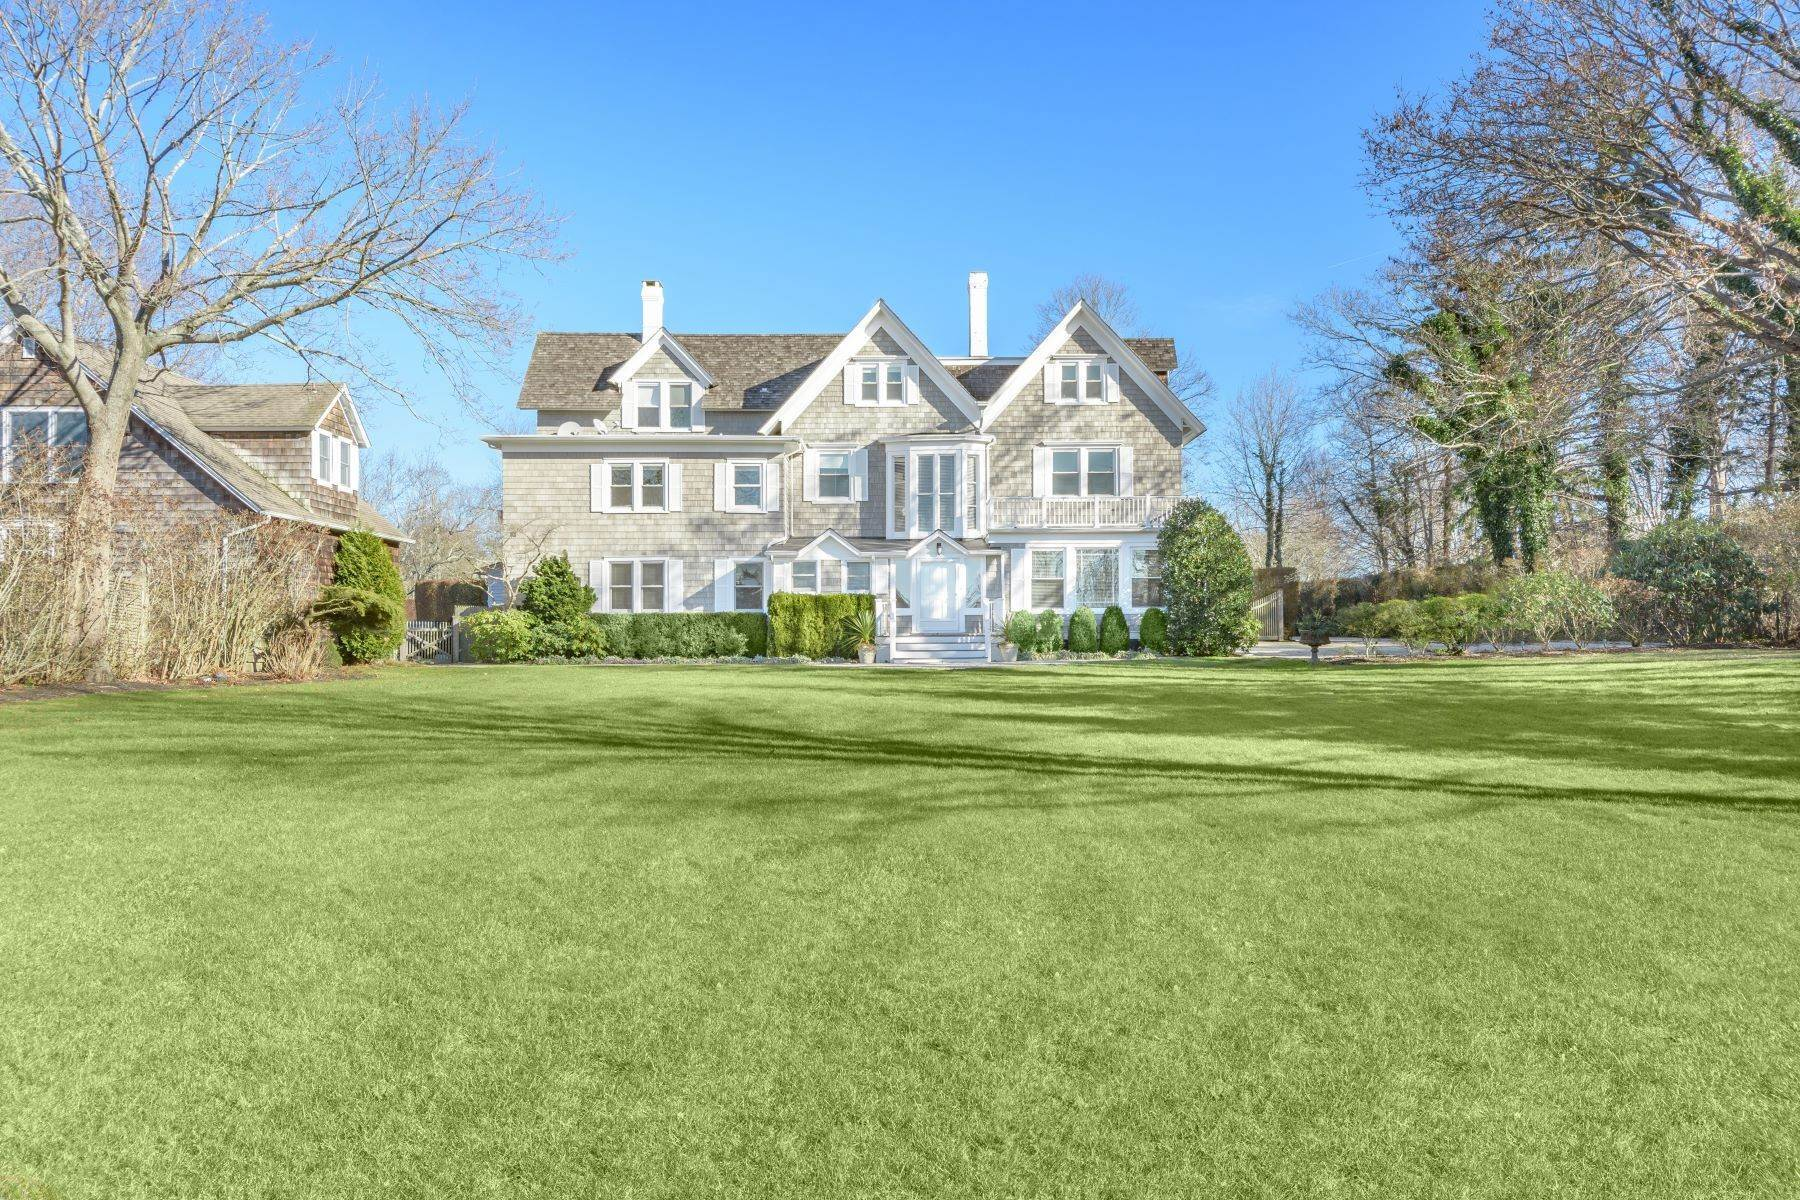 Single Family Homes for Sale at The Gables, Southampton 267 South Main Street Southampton, New York 11968 United States